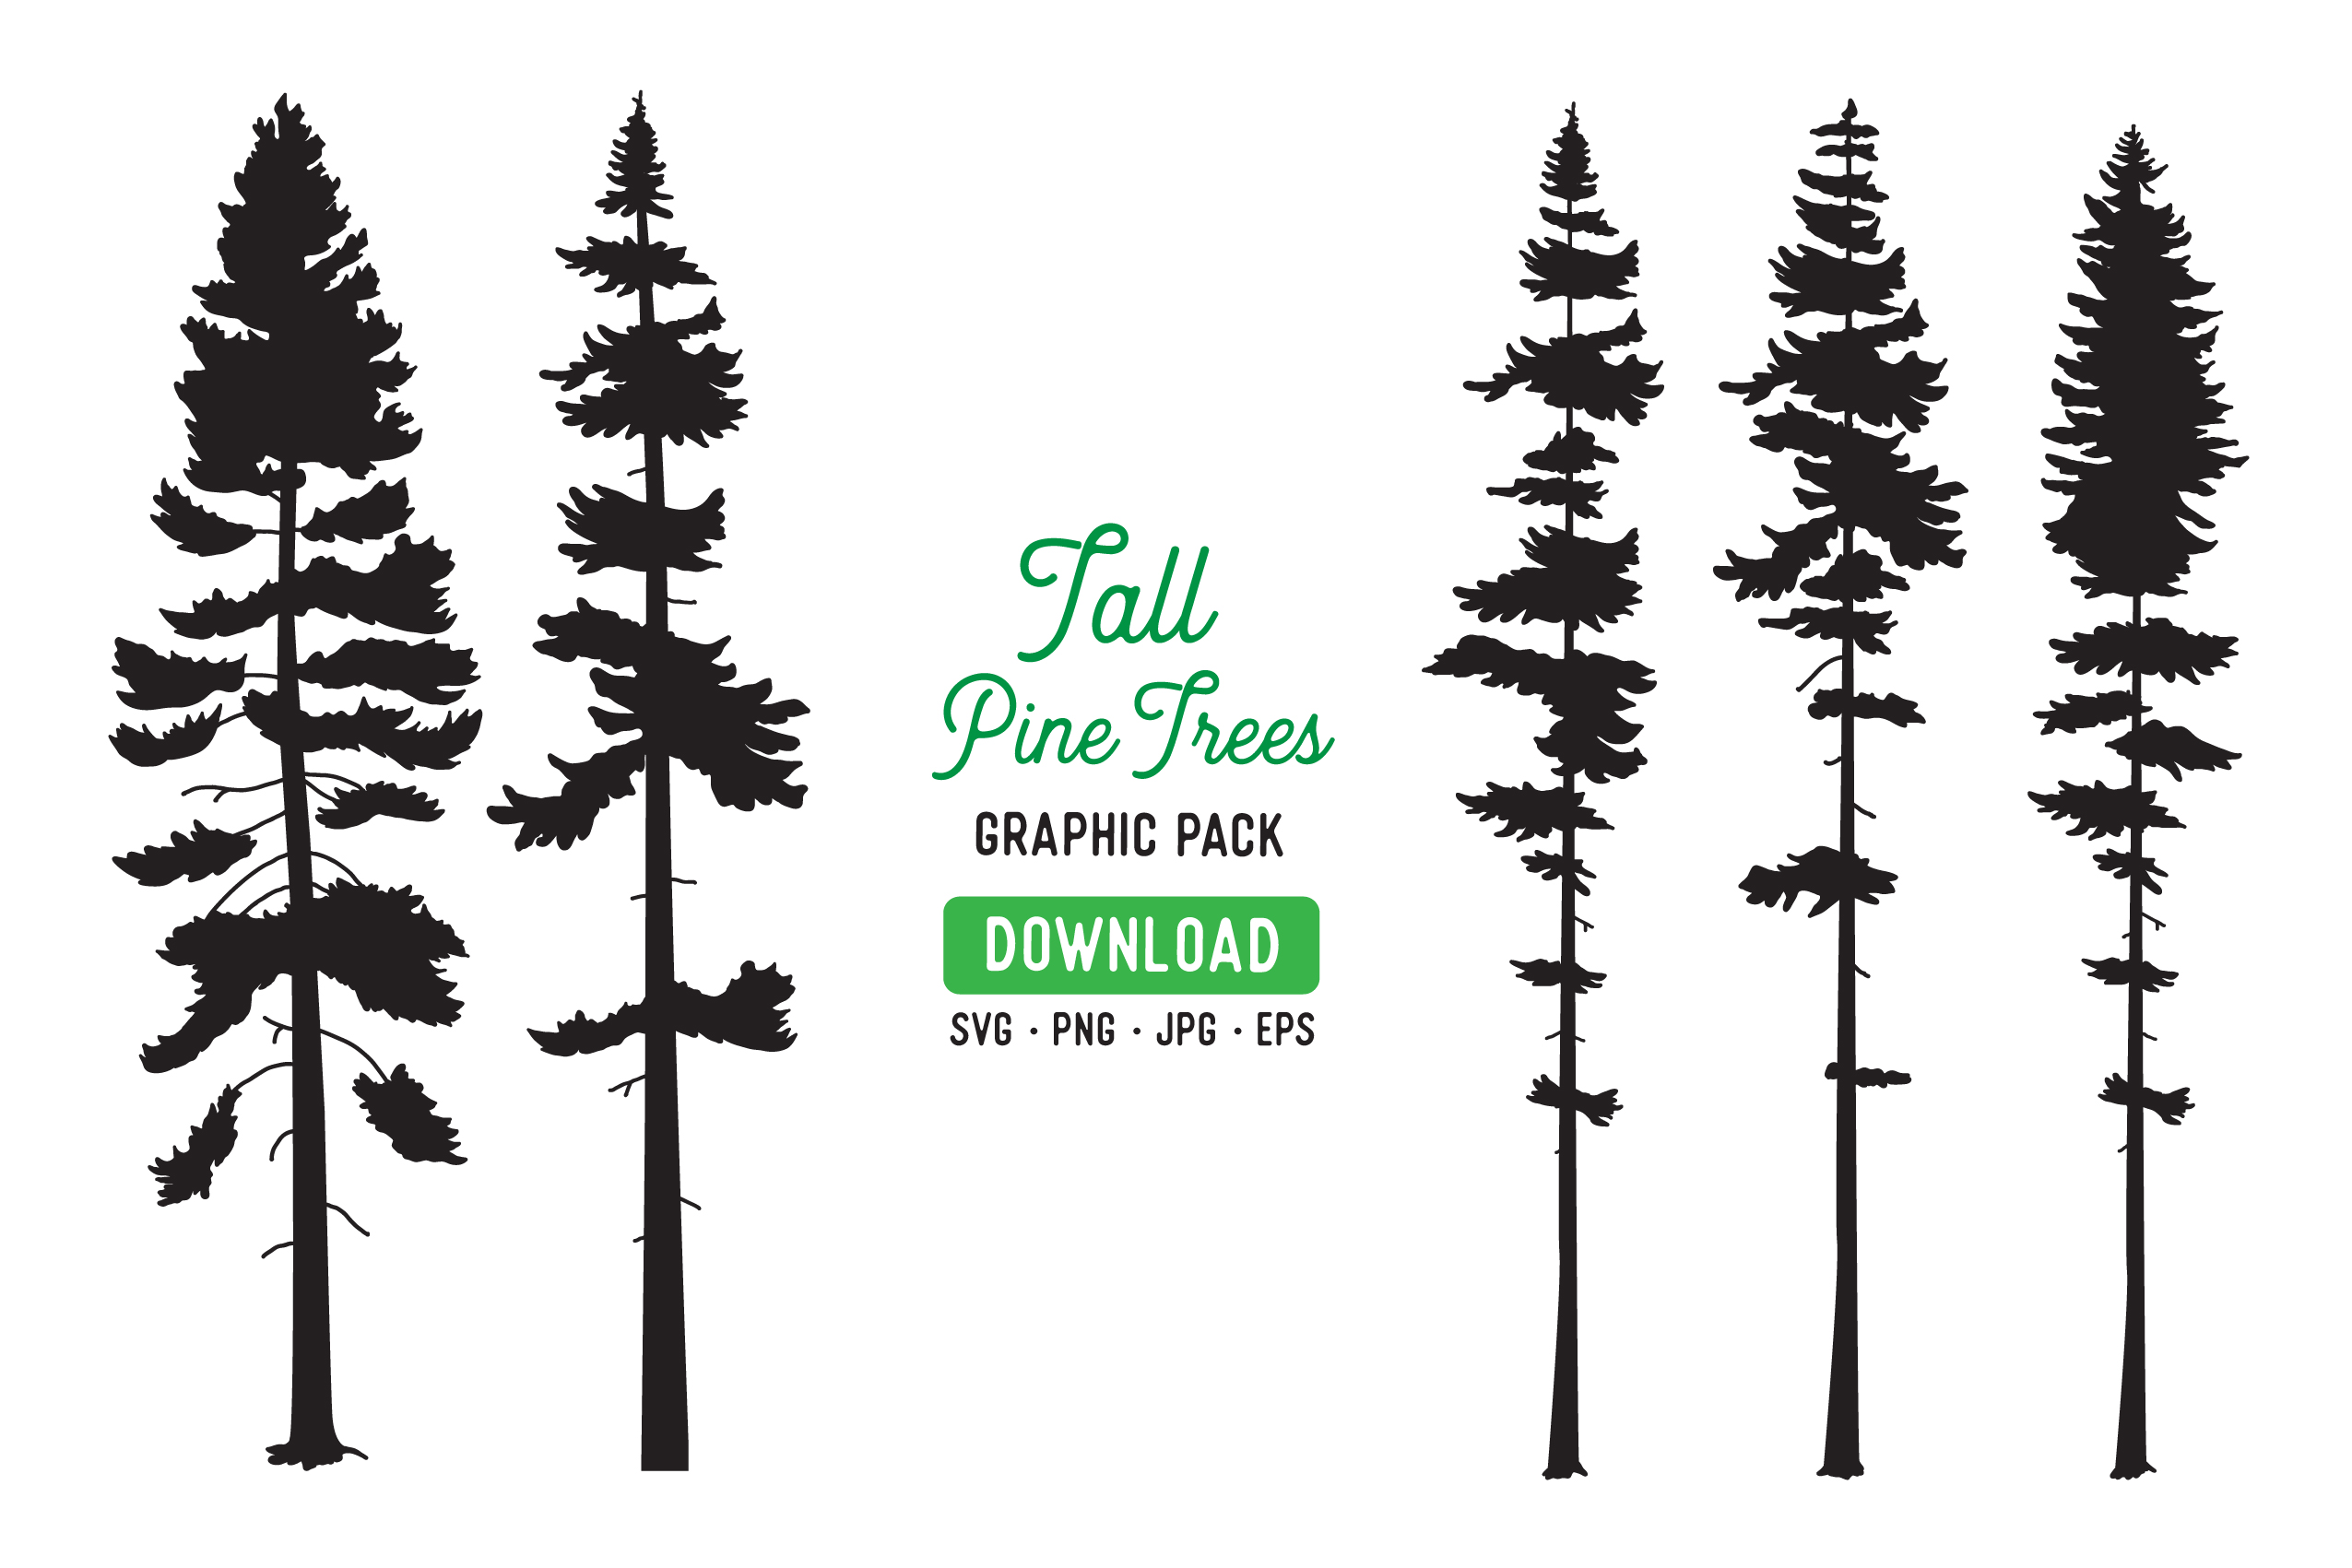 Download Free Tall Pine Tree Vector Graphic Bundle Graphic By The Gradient Fox for Cricut Explore, Silhouette and other cutting machines.